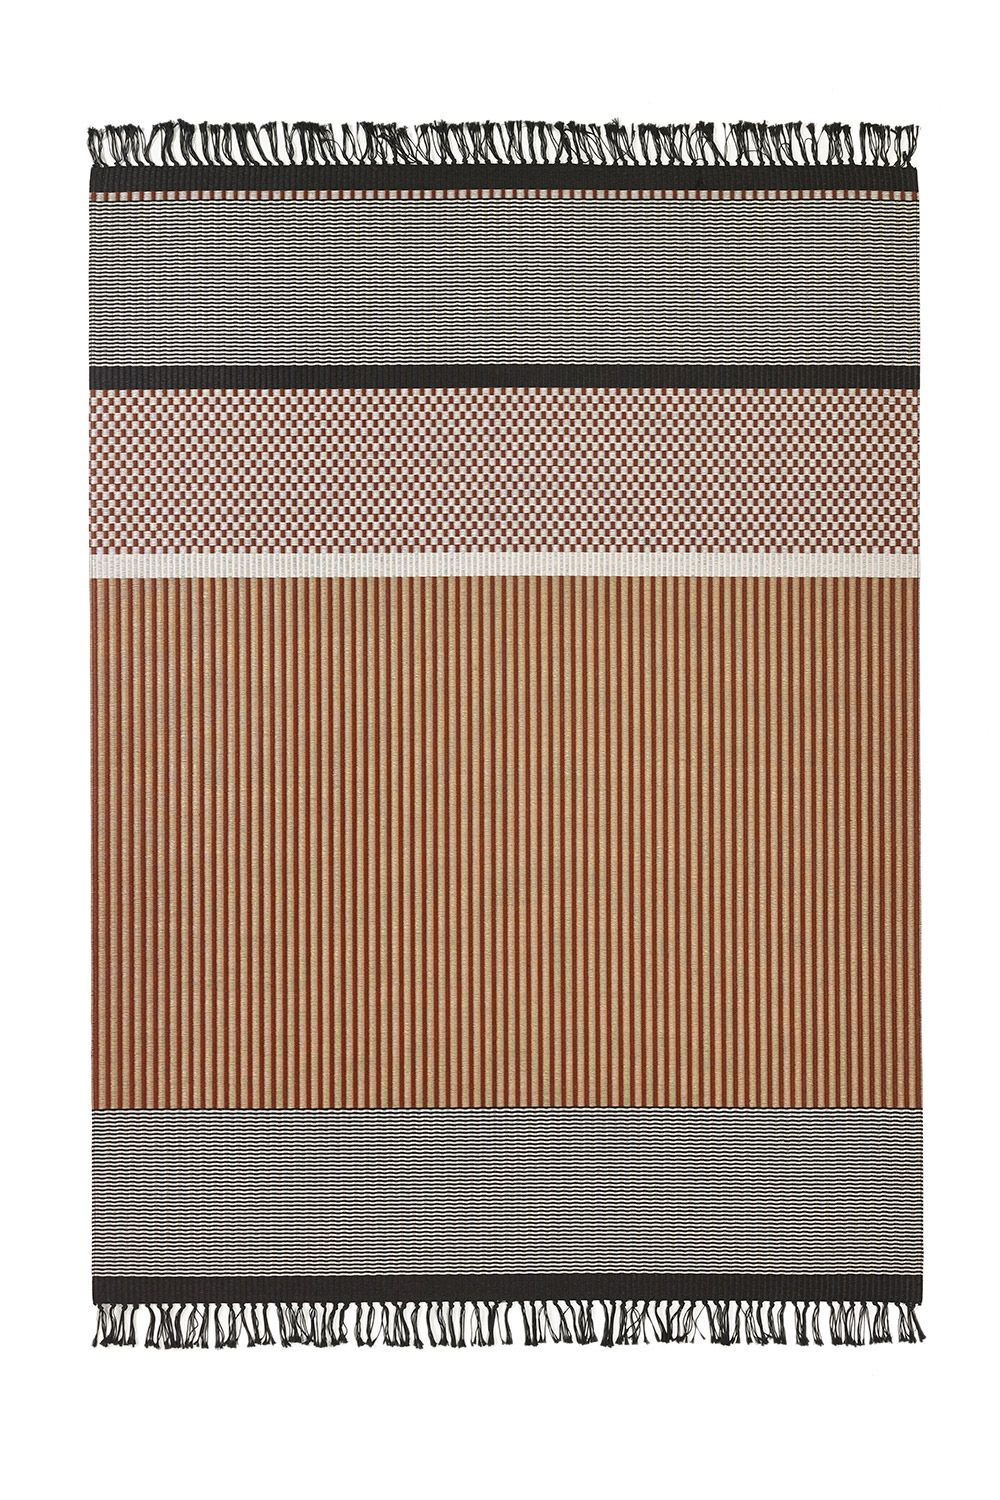 Woodnotes San Francisco paper yarn carpet col. reddish brown-stone. The San Francisco carpet's design is an asymmetrical combination of different vertical and horizontal stripes and squares. Design by Ritva Puotila  #interiordesign #homedecor #design #textile #rug #carpet #immcologne2017